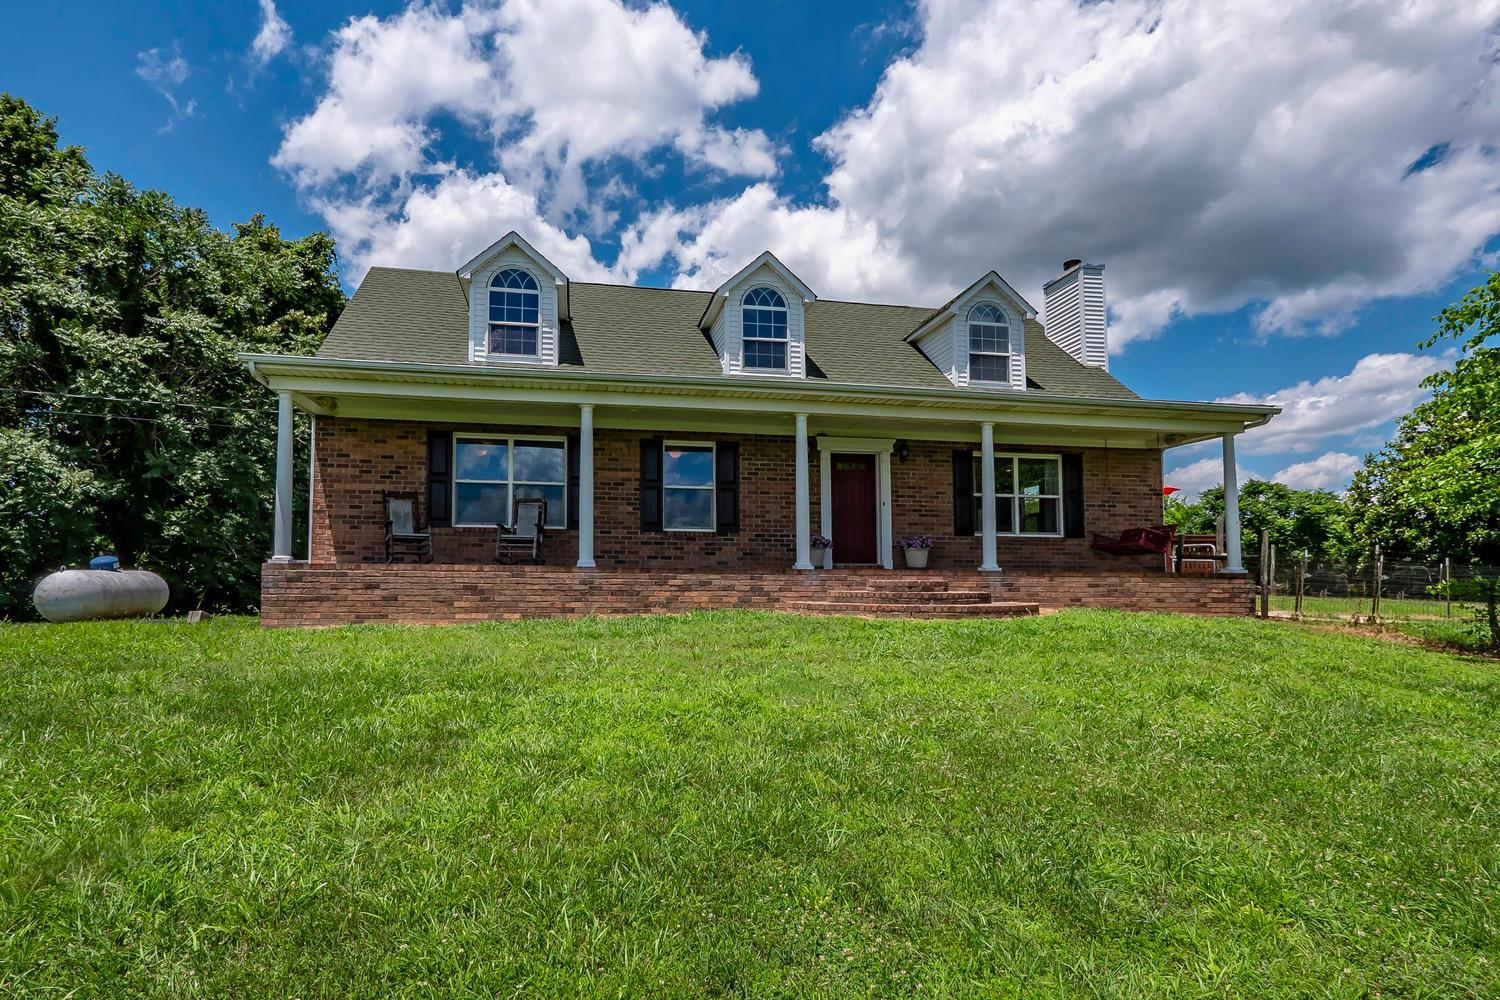 1925 Sedberry Rd, Thompsons Station, TN 37179 - Thompsons Station, TN real estate listing